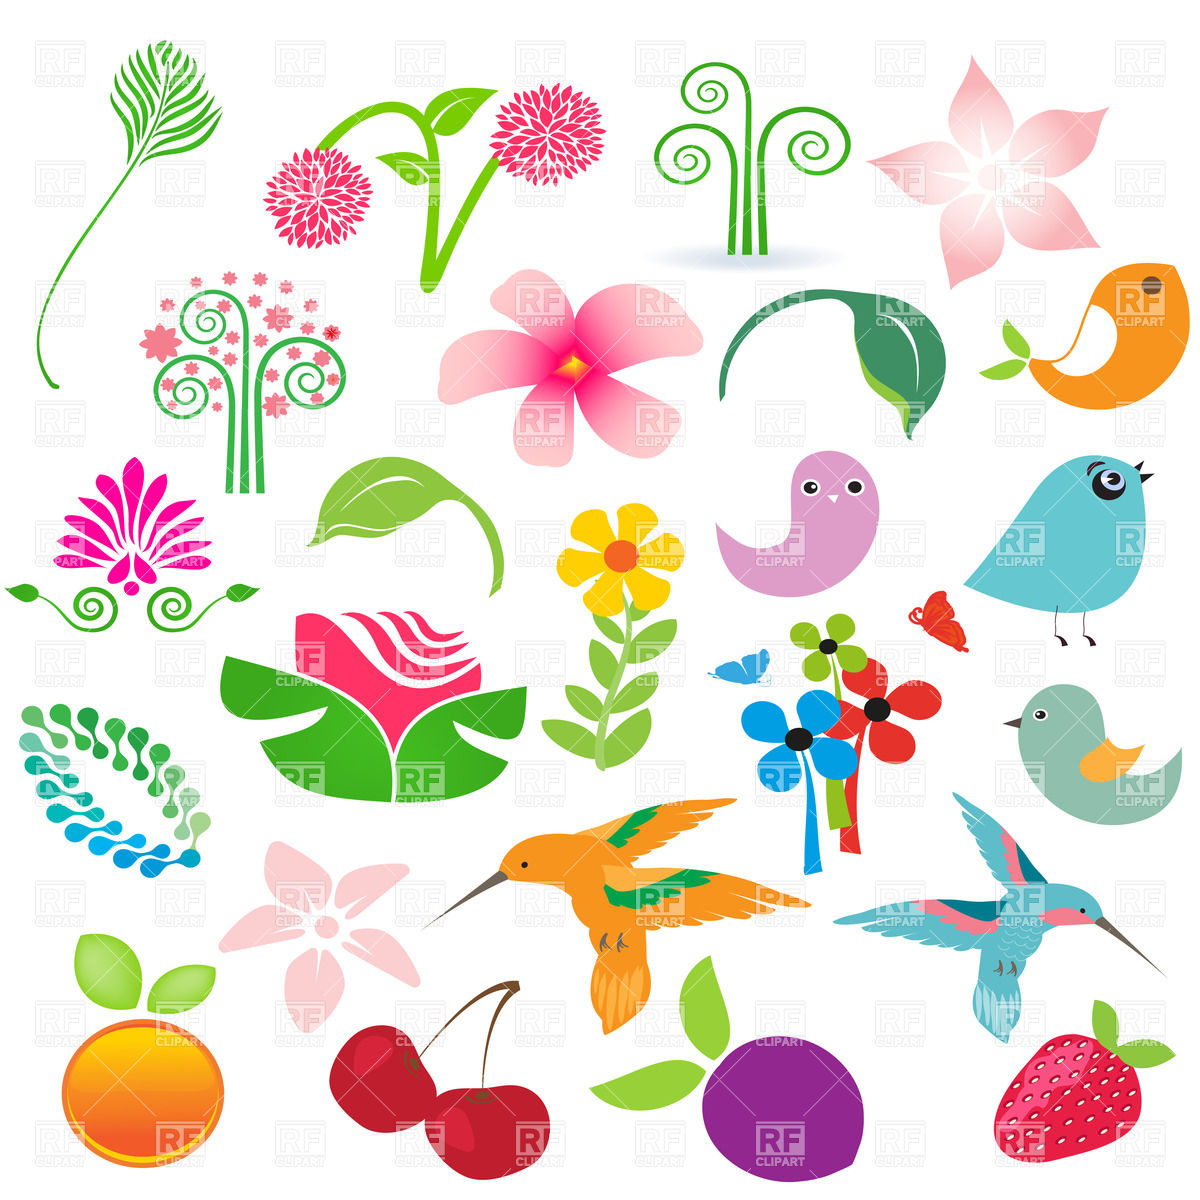 Flower nature clipart 20 free Cliparts | Download images ...